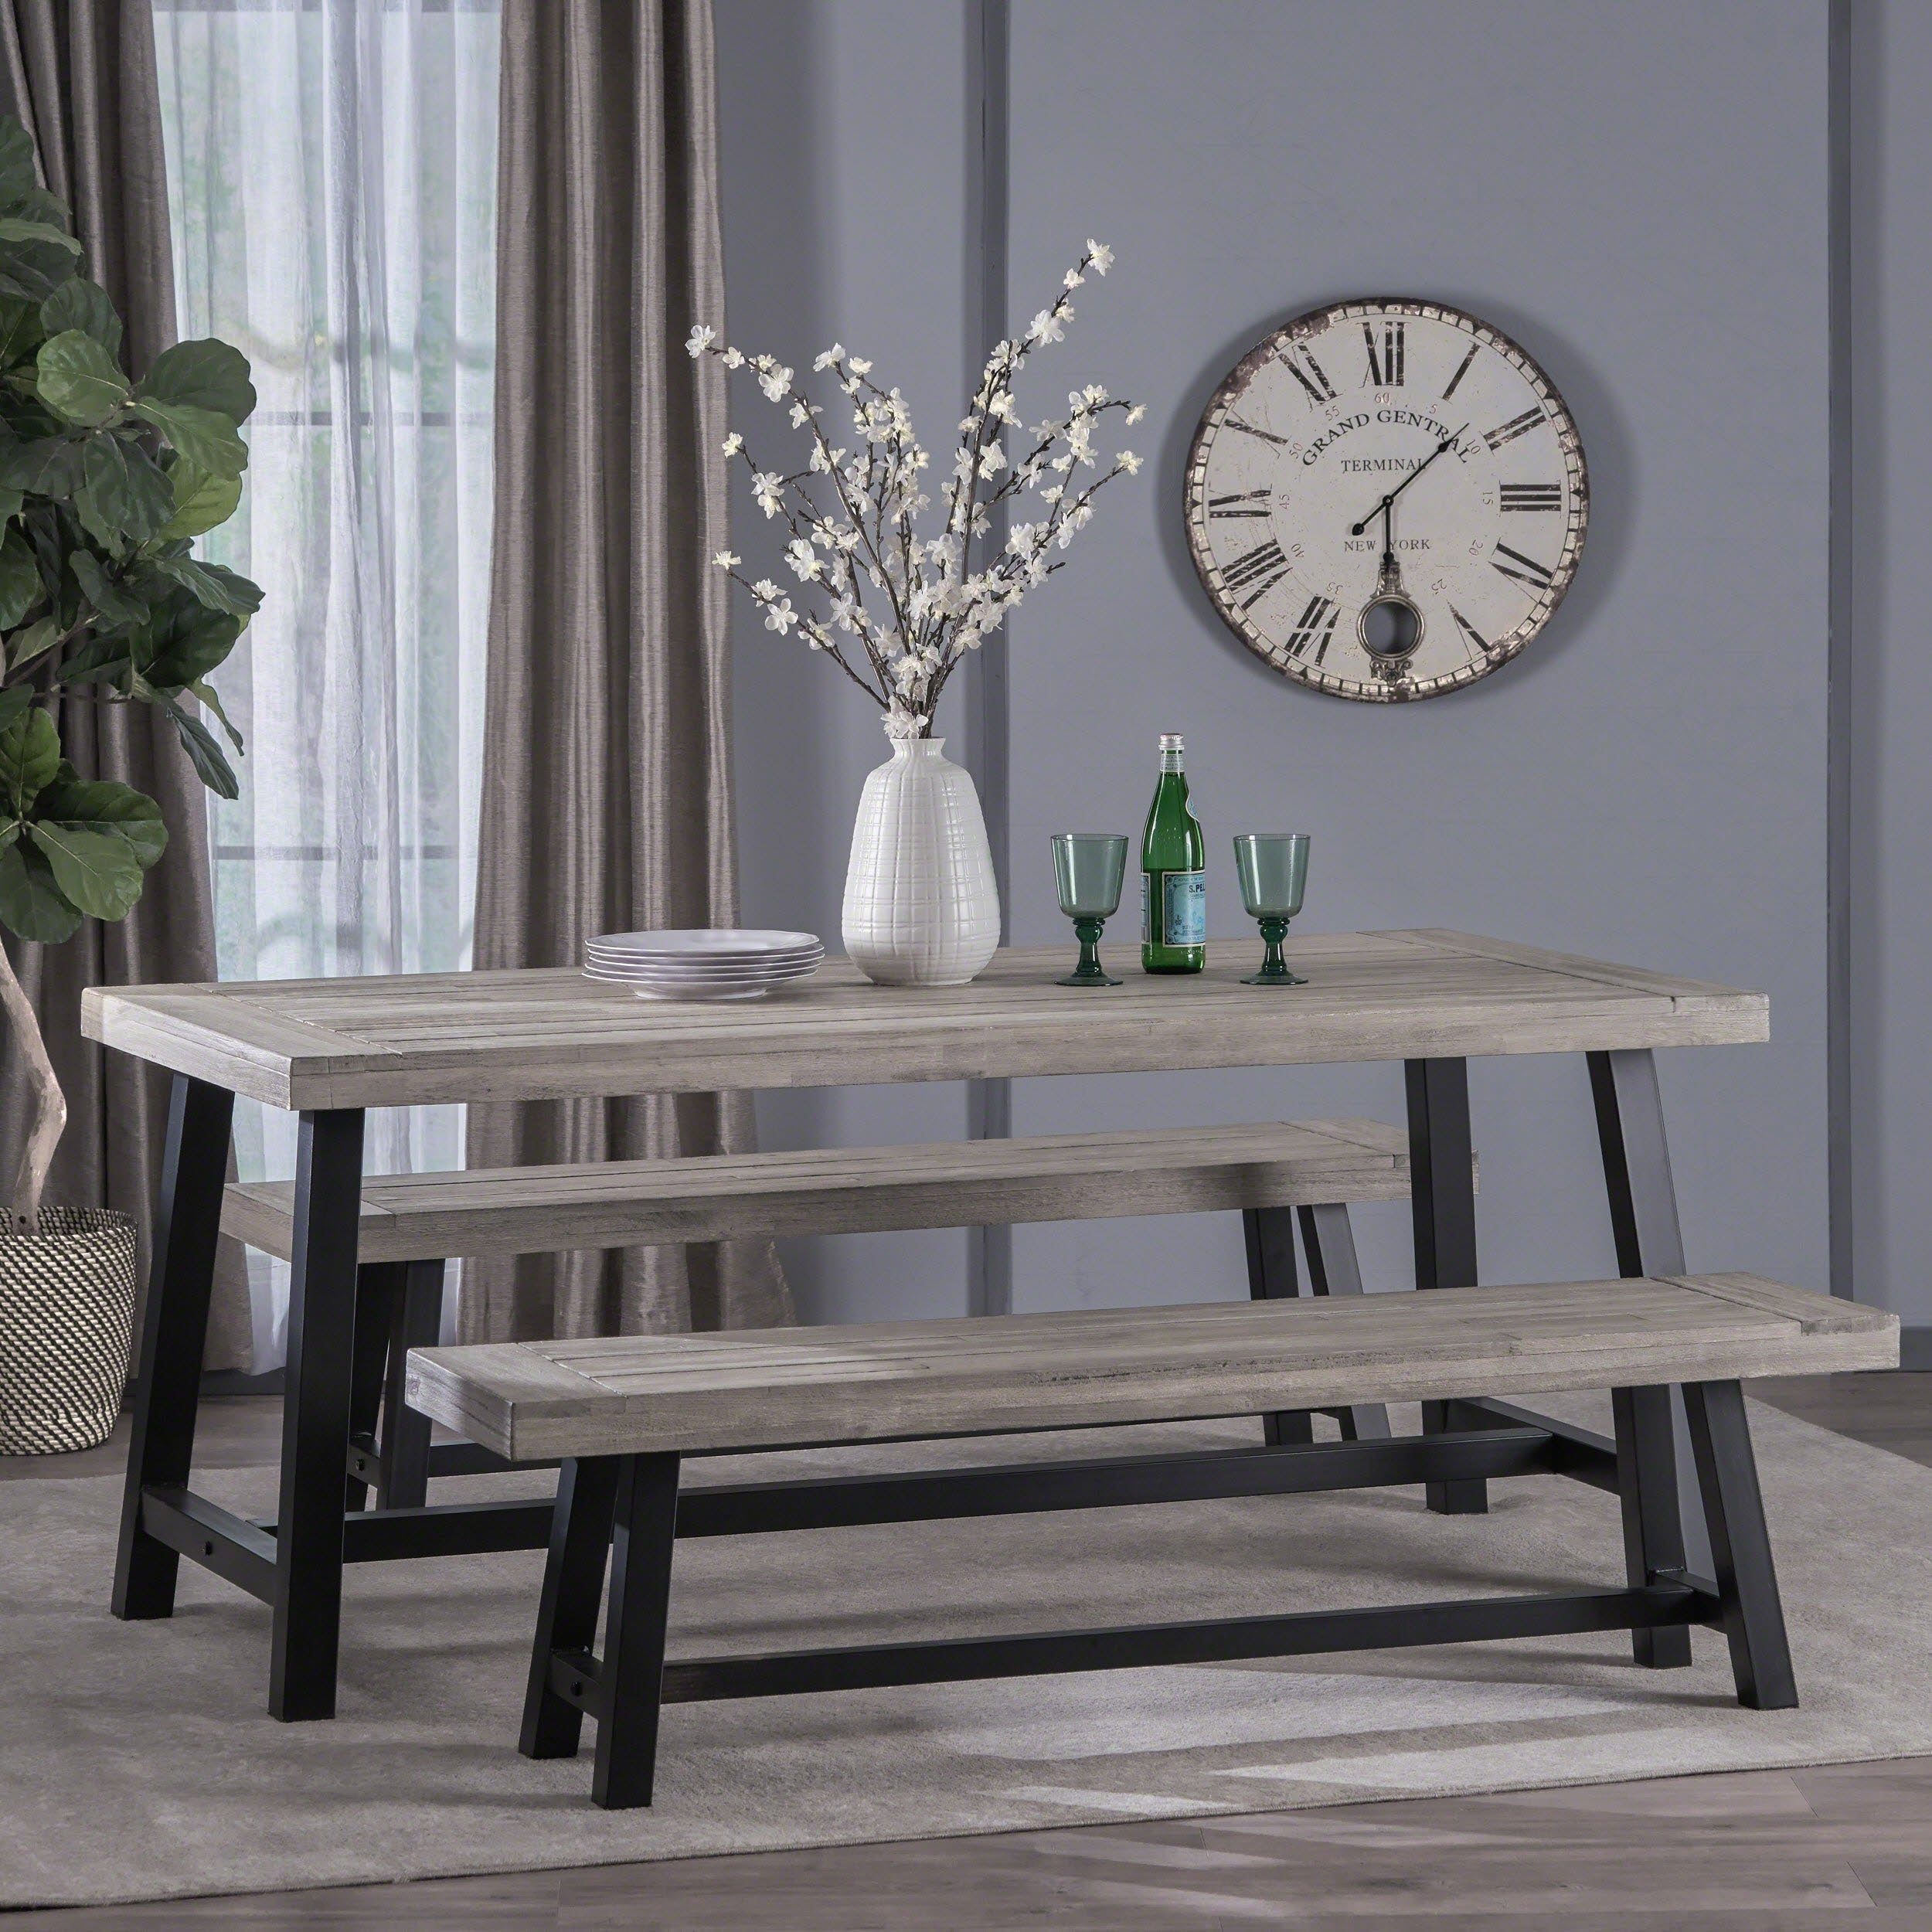 Jubilee Modern Industrial 3 Piece Acacia Wood Picnic Dining Set With Benches By Christopher Knight Home Overstock 22869204